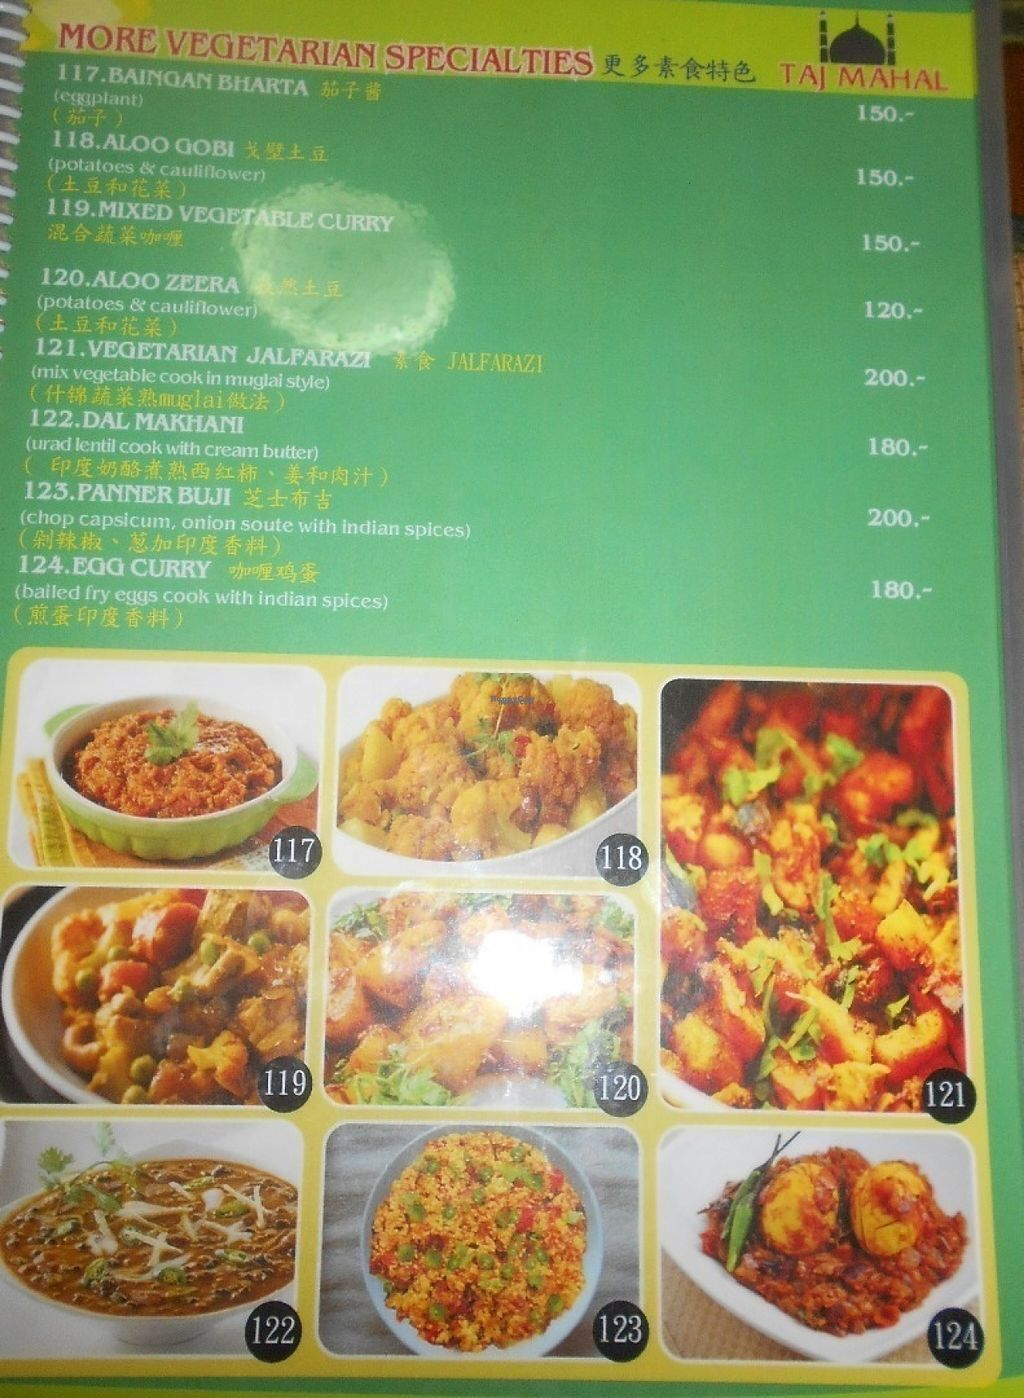 """Photo of Kashmir Indian Restaurant  by <a href=""""/members/profile/Kelly%20Kelly"""">Kelly Kelly</a> <br/>Kashmir Indian Restaurant <br/> August 5, 2016  - <a href='/contact/abuse/image/77951/165824'>Report</a>"""